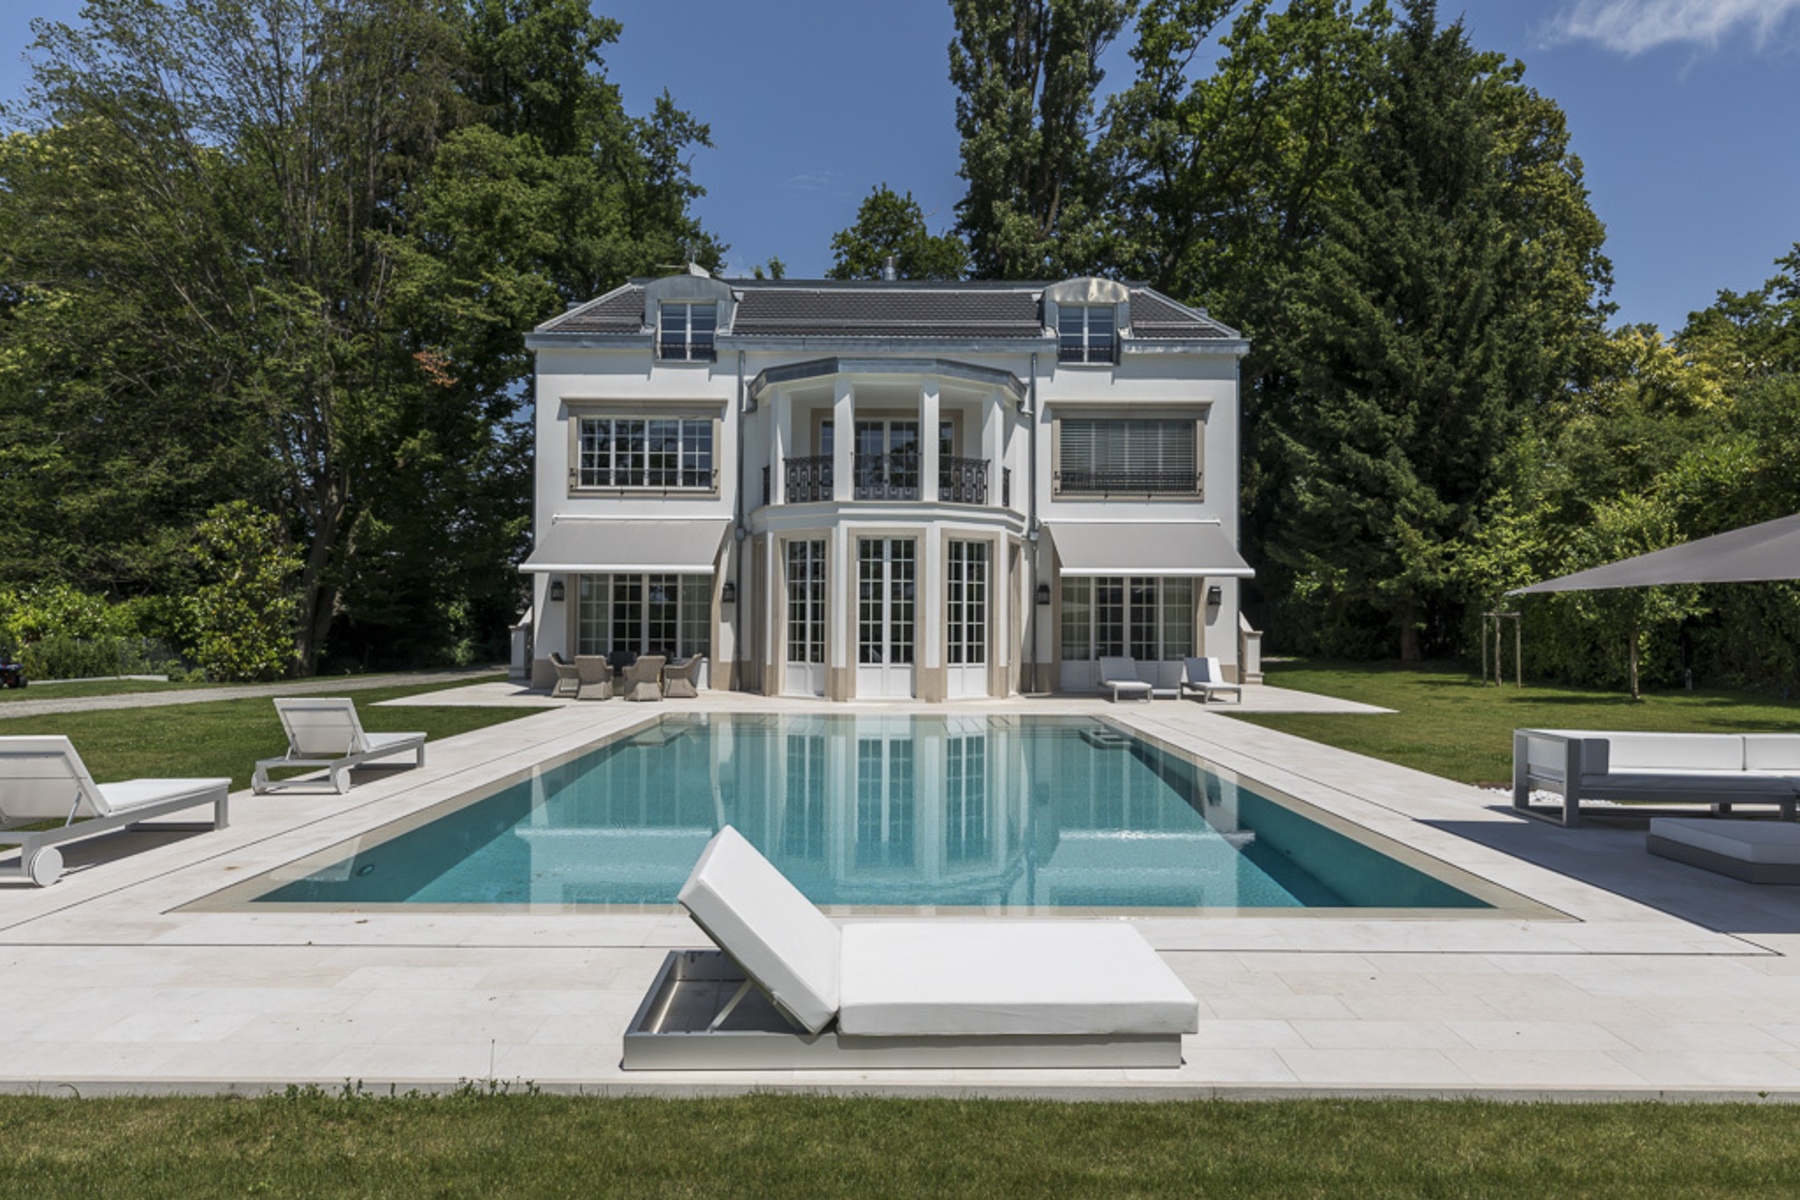 Single Family Home for Active at Charismatic mansion Collonge-Bellerive Collonge-Bellerive, Geneva 1245 Switzerland